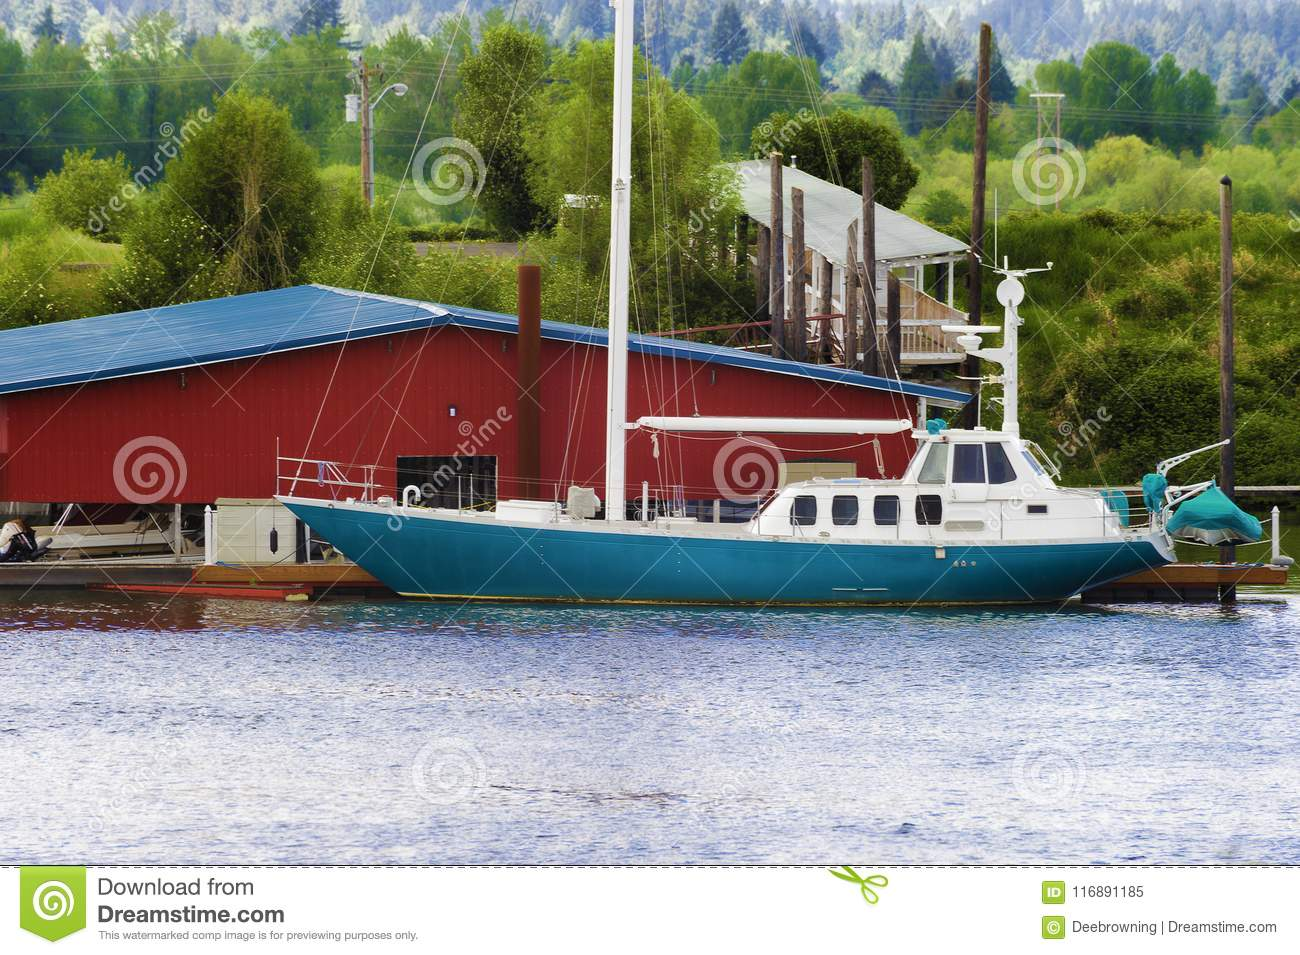 Blue and white sailboat docked on the Willamette River in Oregon